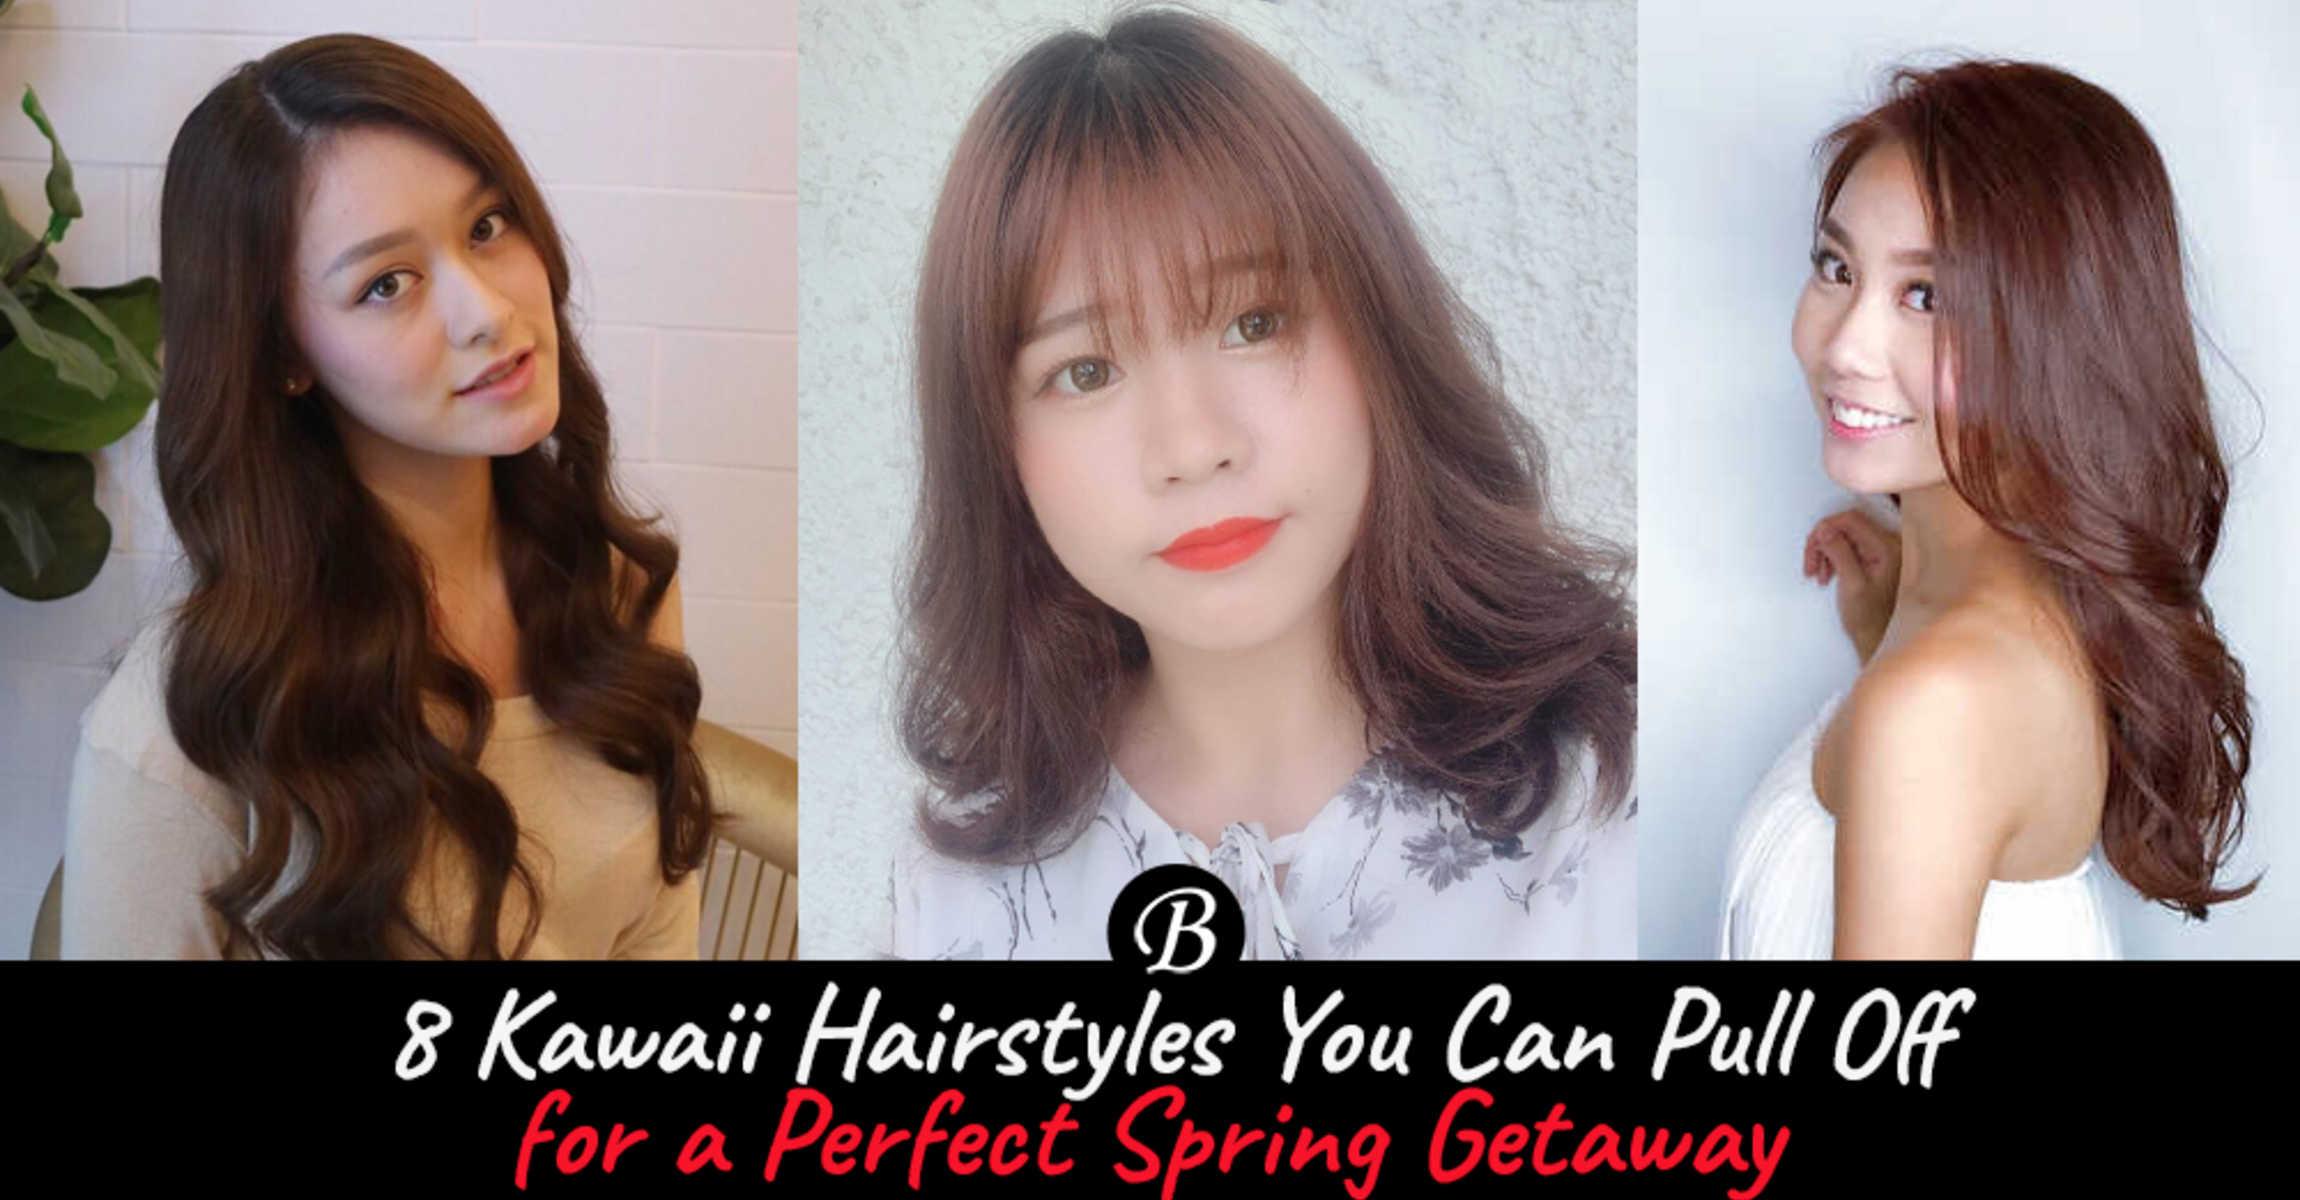 8 Kawaii Hairstyles You Can Pull Off For A Perfect Spring Getaway